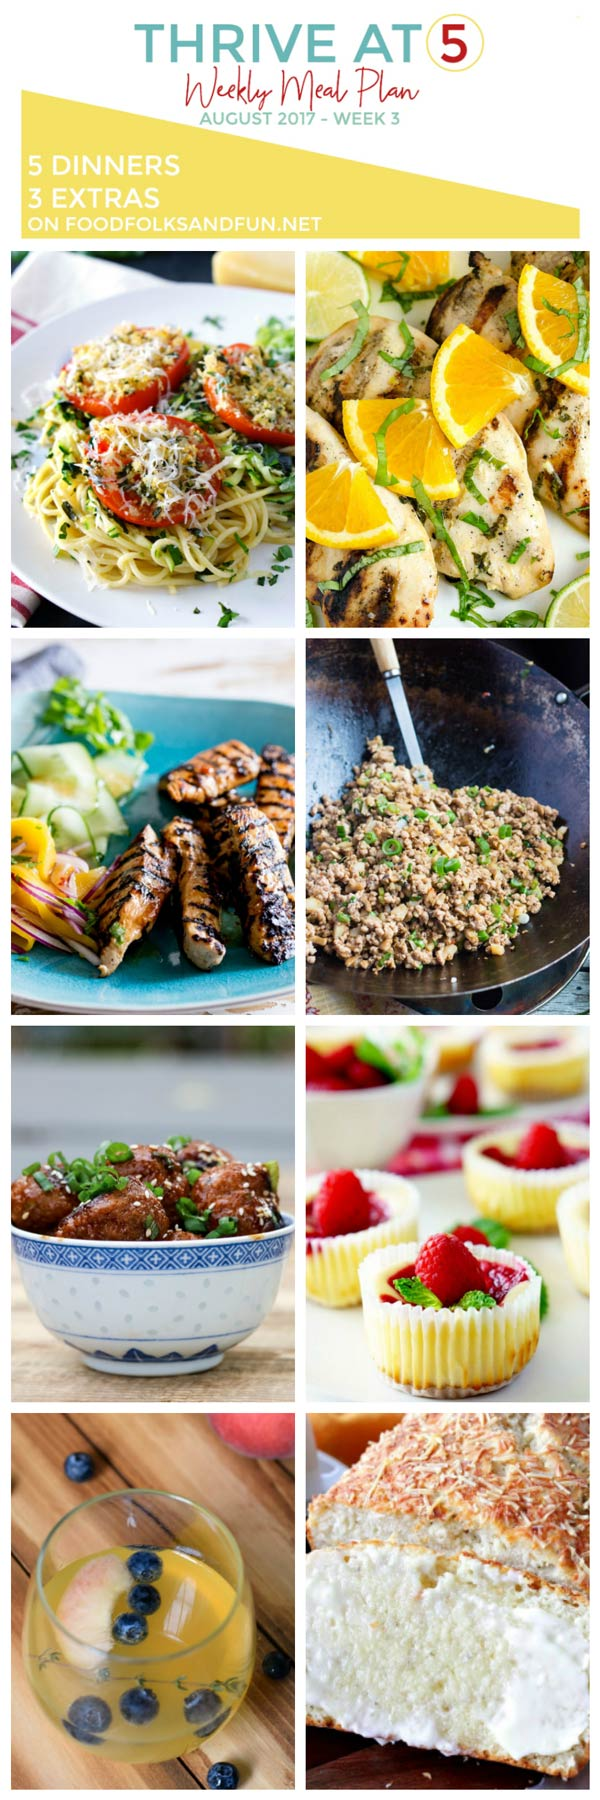 Meal Plan for August week 3